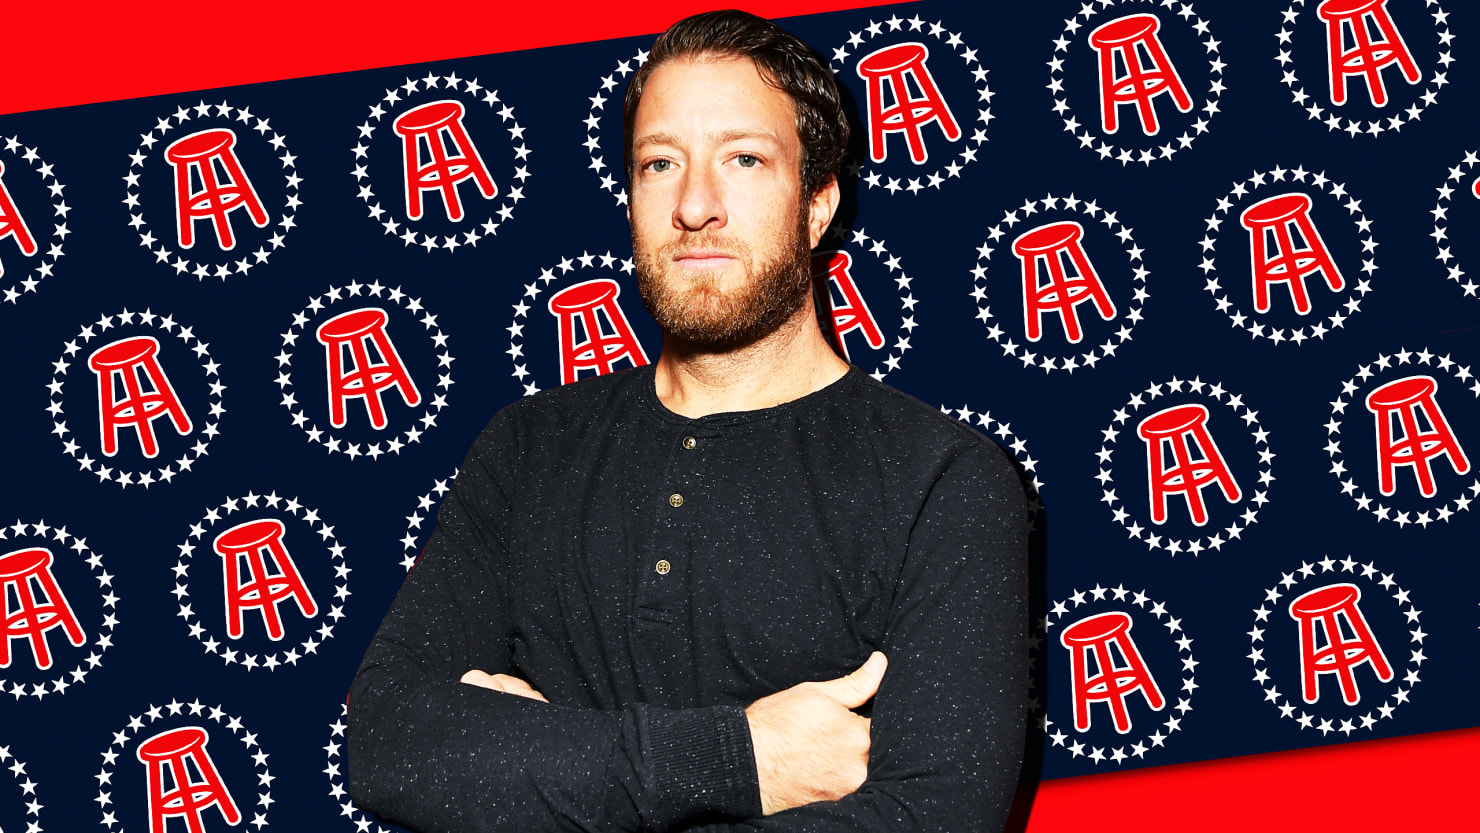 """954fca4840 Mediagazer: A look at how Barstool Sports employees, fans regularly harass  female reporters, with founder Dave Portnoy once asking if a woman """"kind of  ..."""